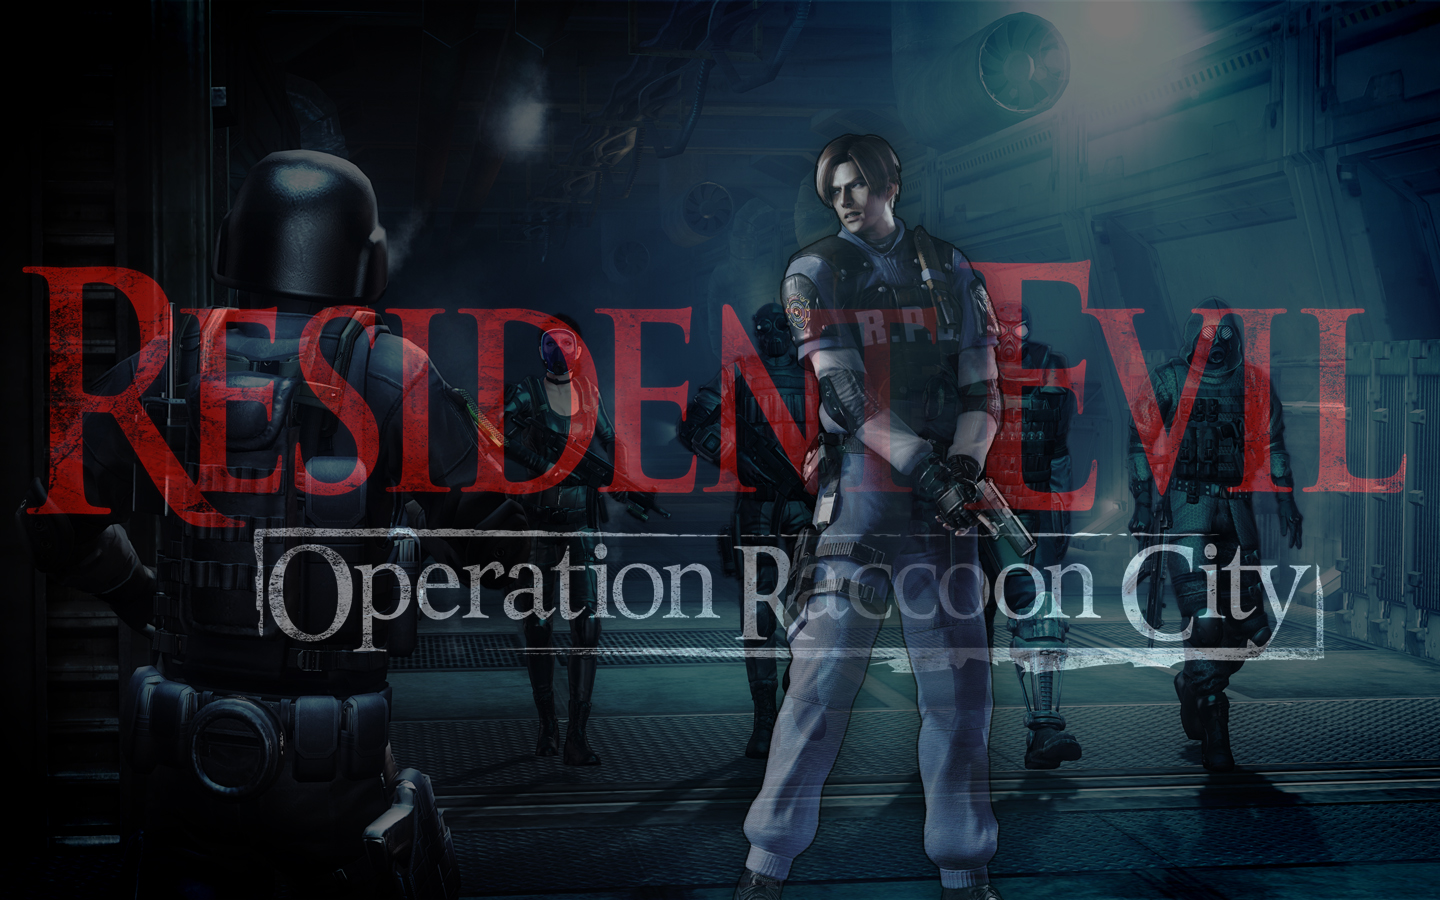 Resident Evil Operation Raccoon City Wallpaper By Pvlimota On